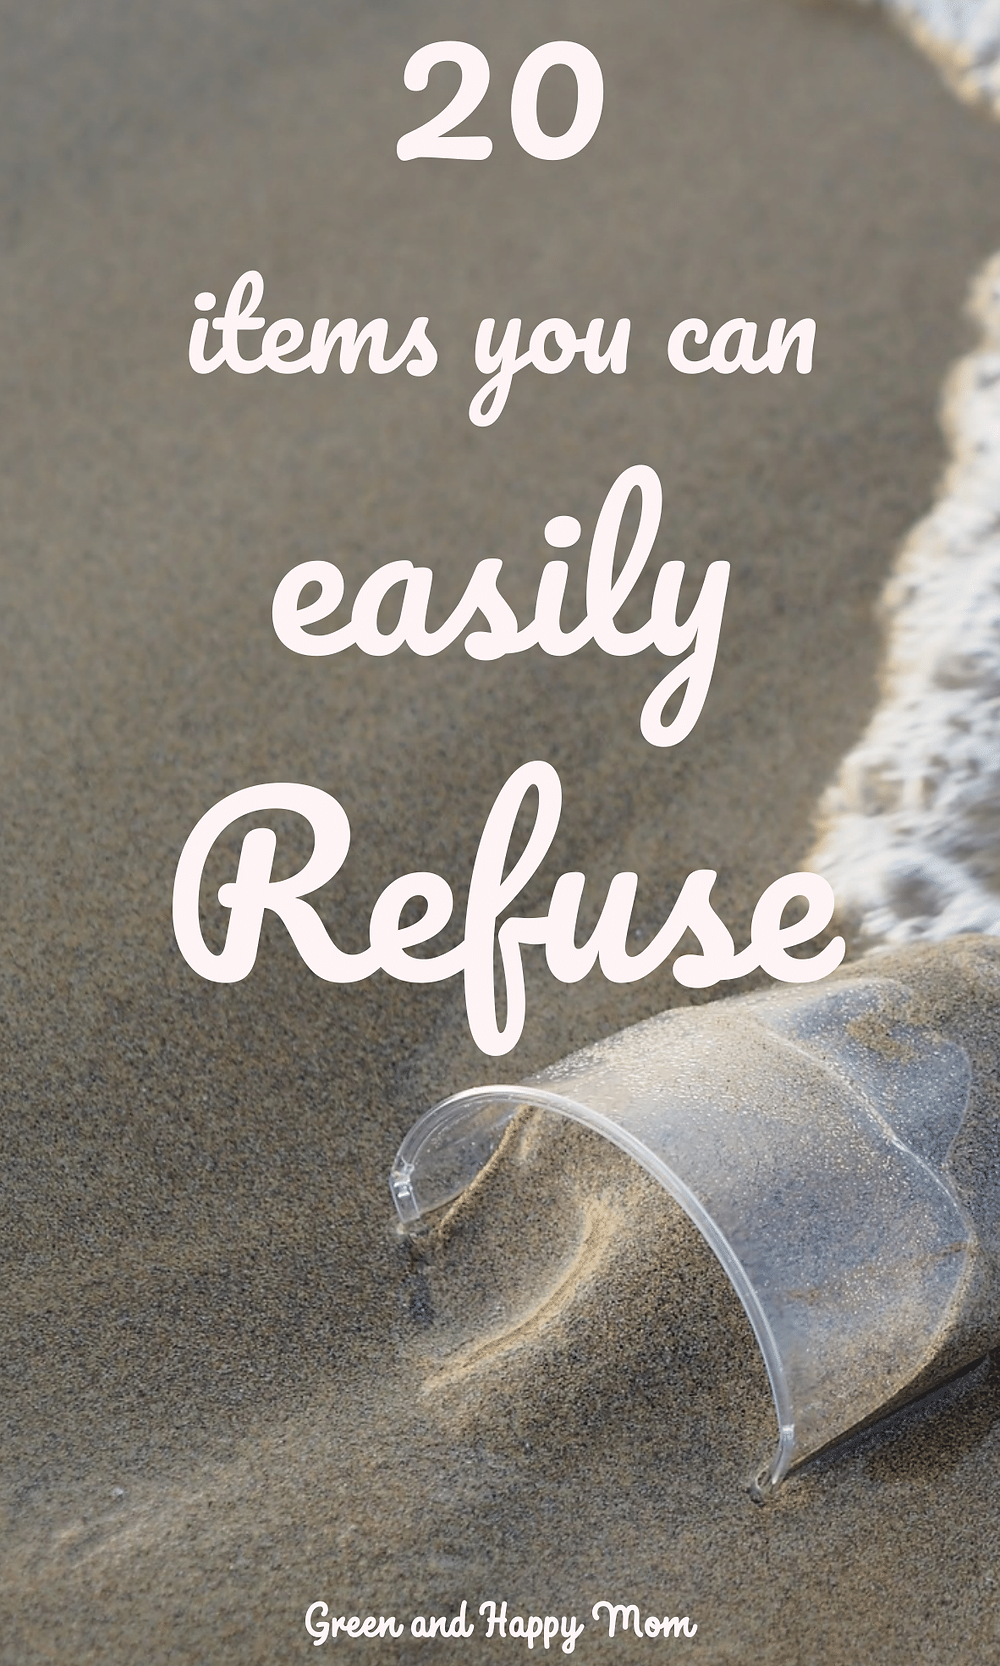 Items that you can easily Refuse